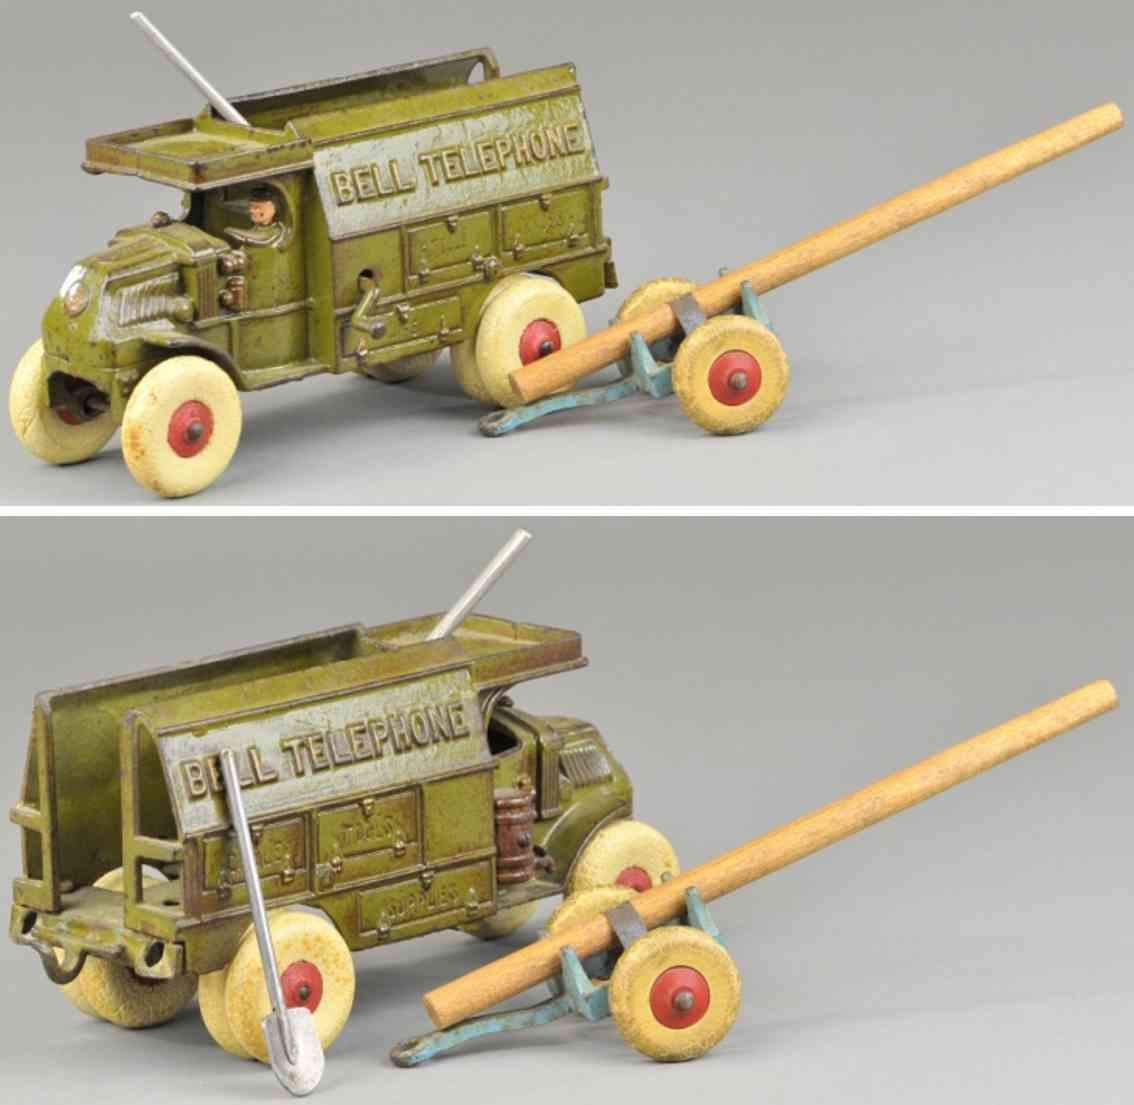 hubley  cast iron toy bell telephone truck olive green pole trailer